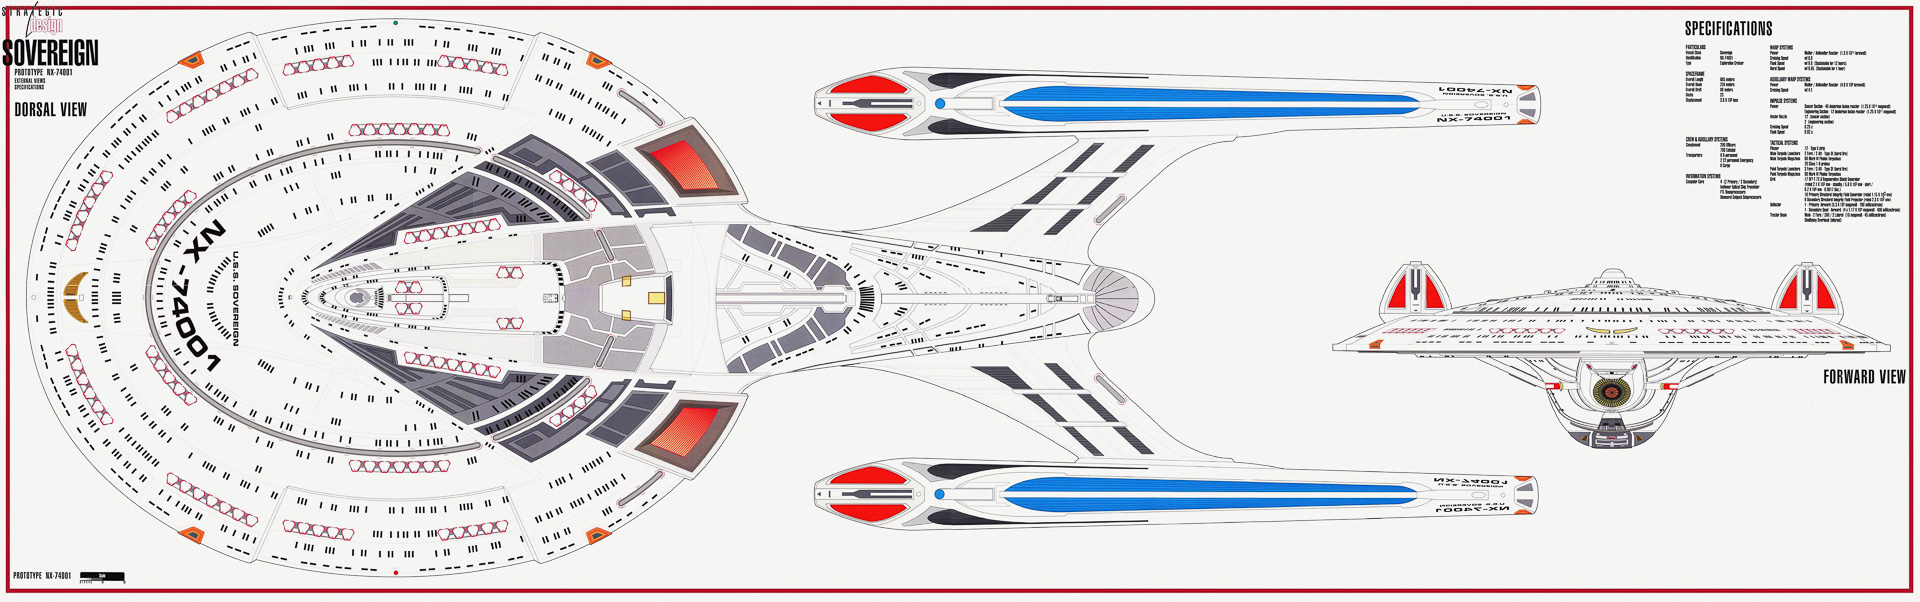 SOVEREIGN CLASS OVERVIEW